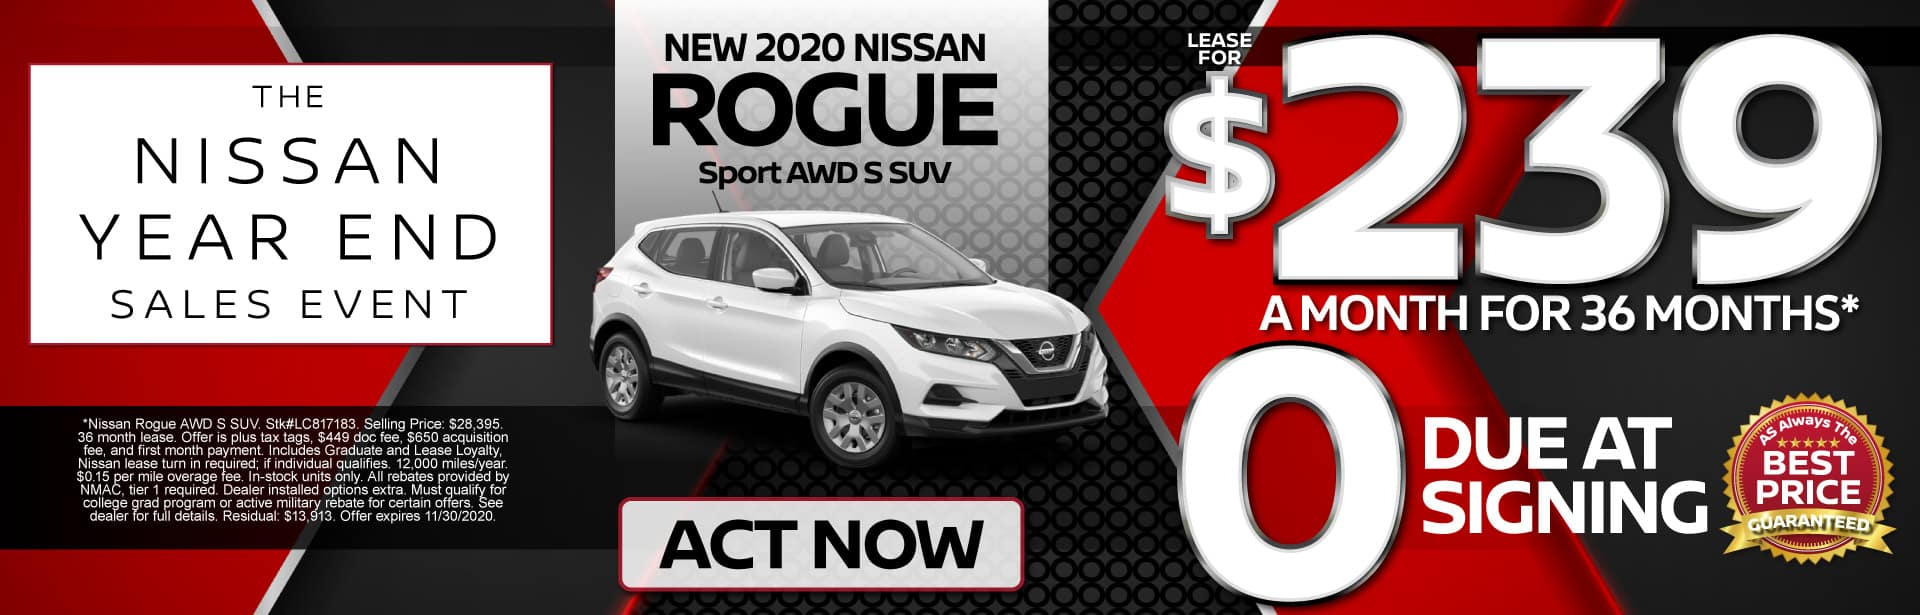 New 2020 Rogue Sport AWD Lease for $239 a month for 36 months | Act Now